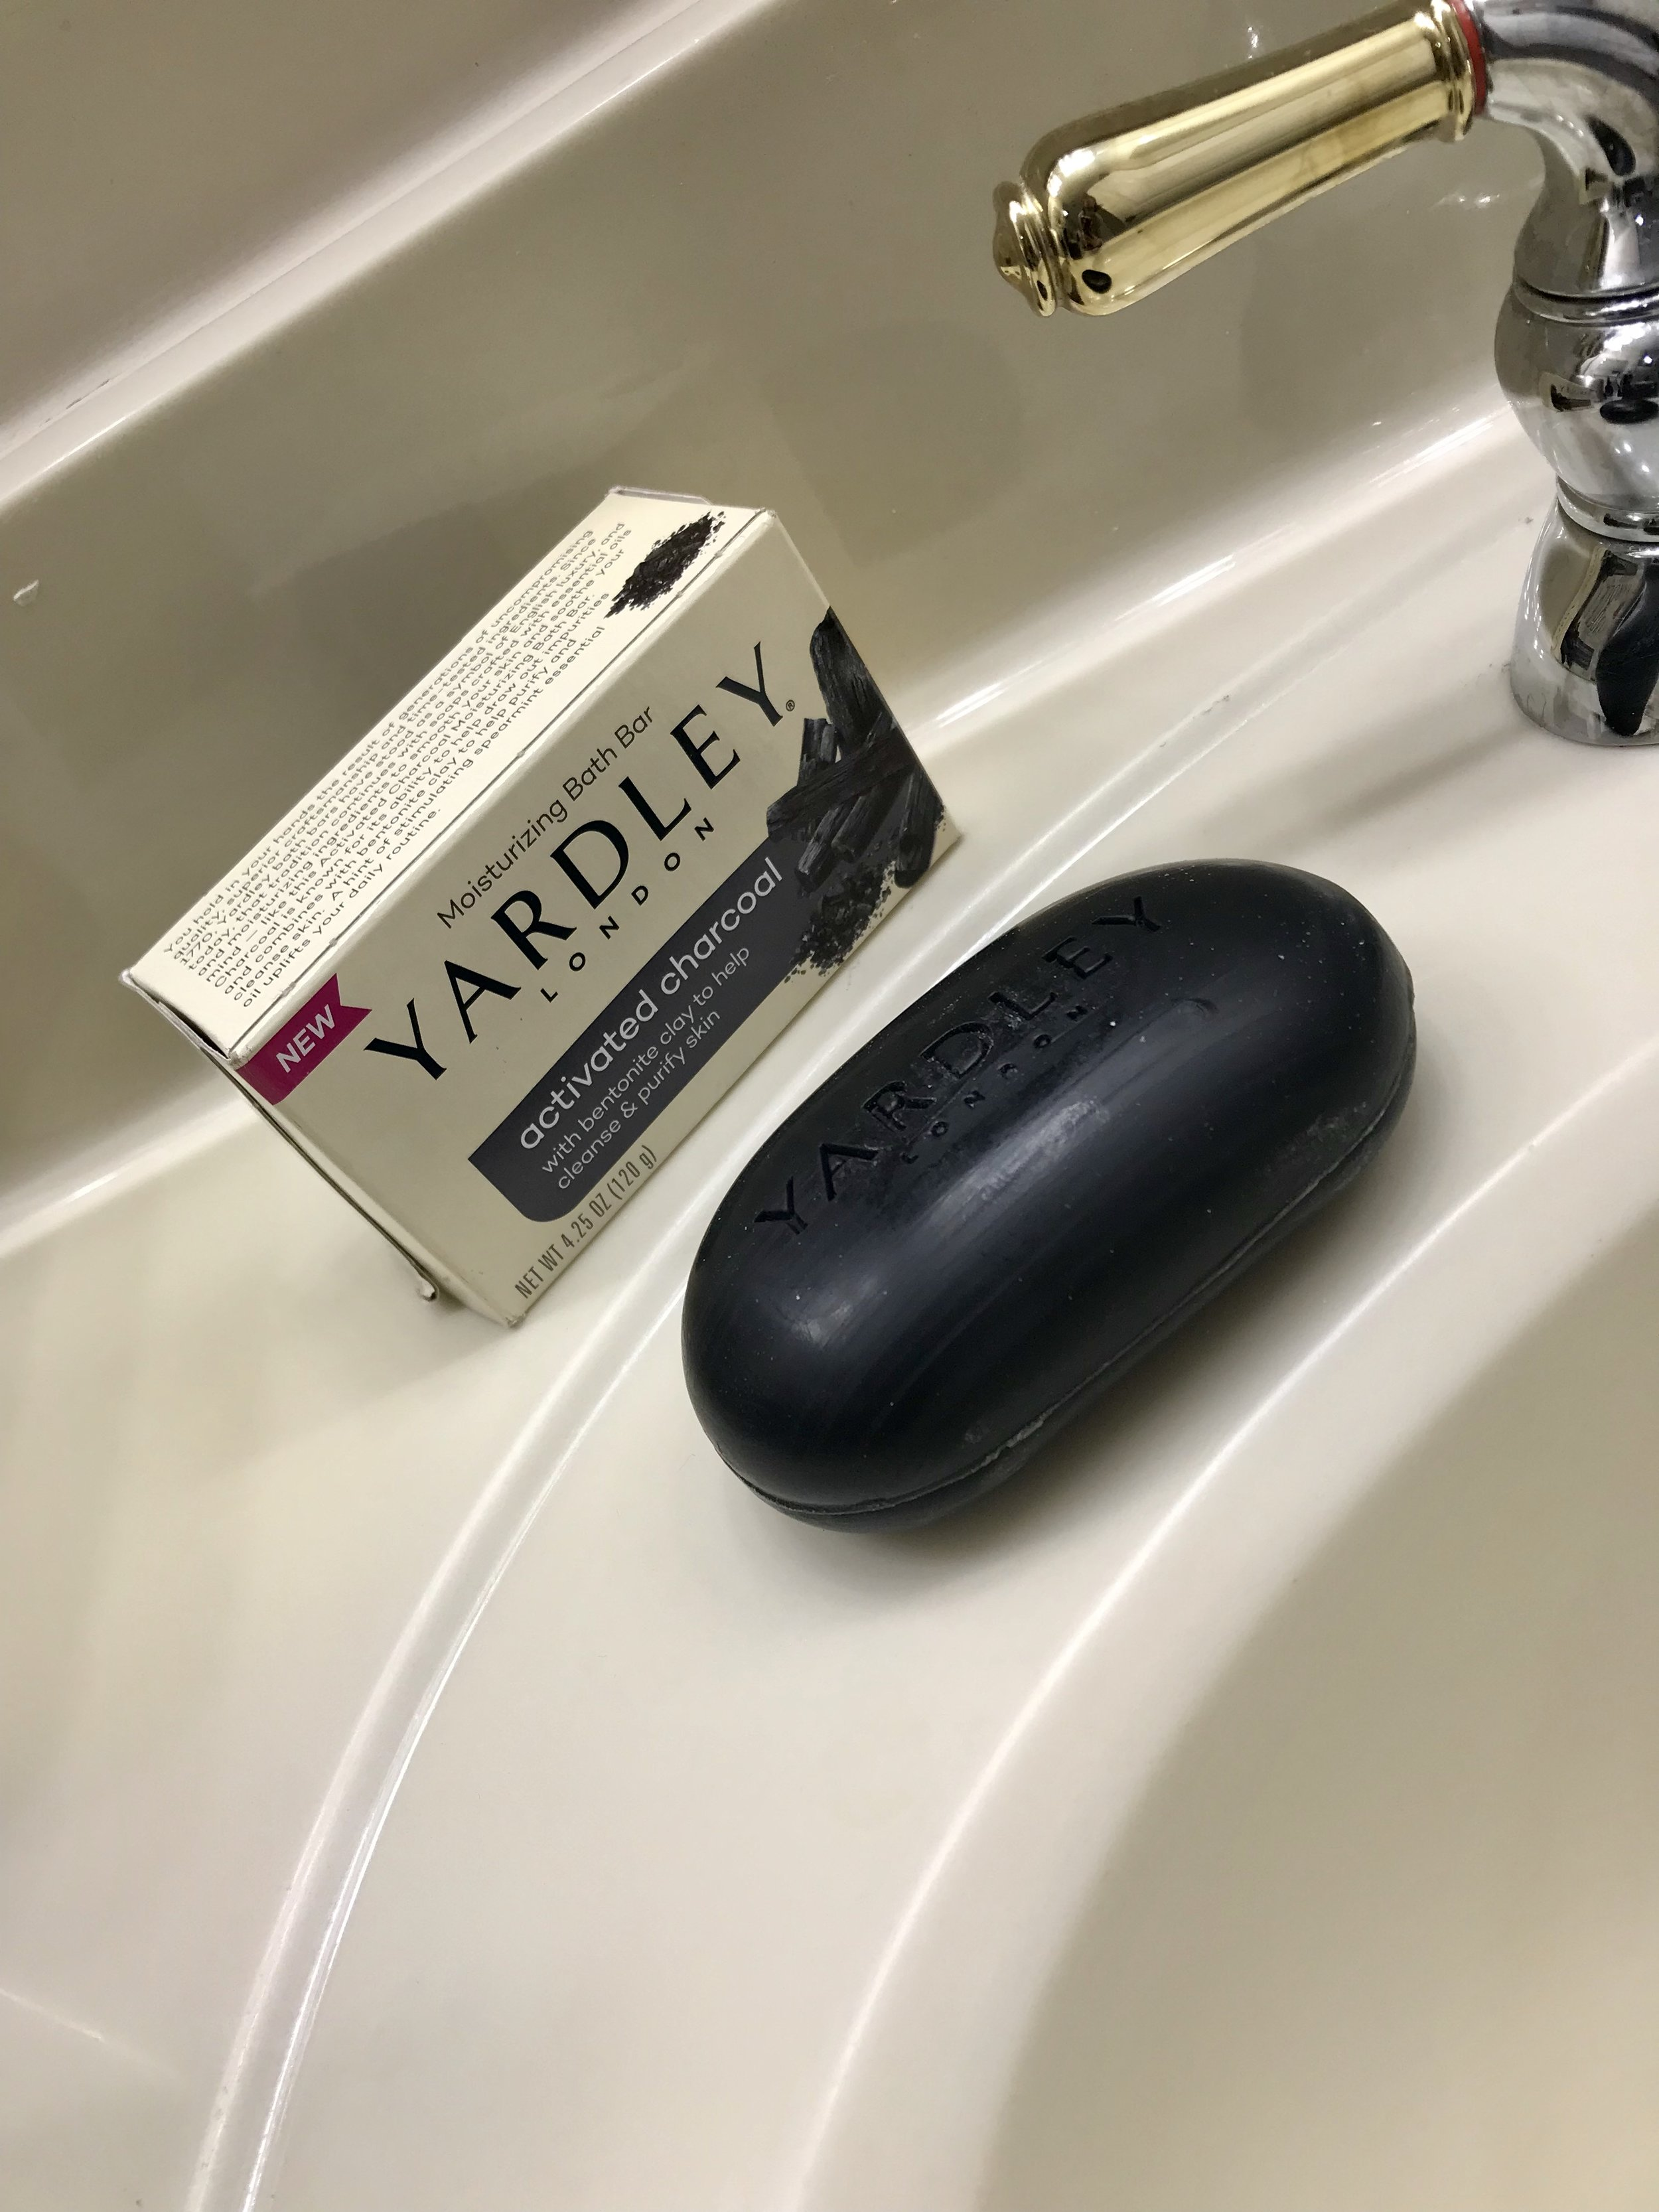 Review: Yardley Activated Charcoal Bath Bar